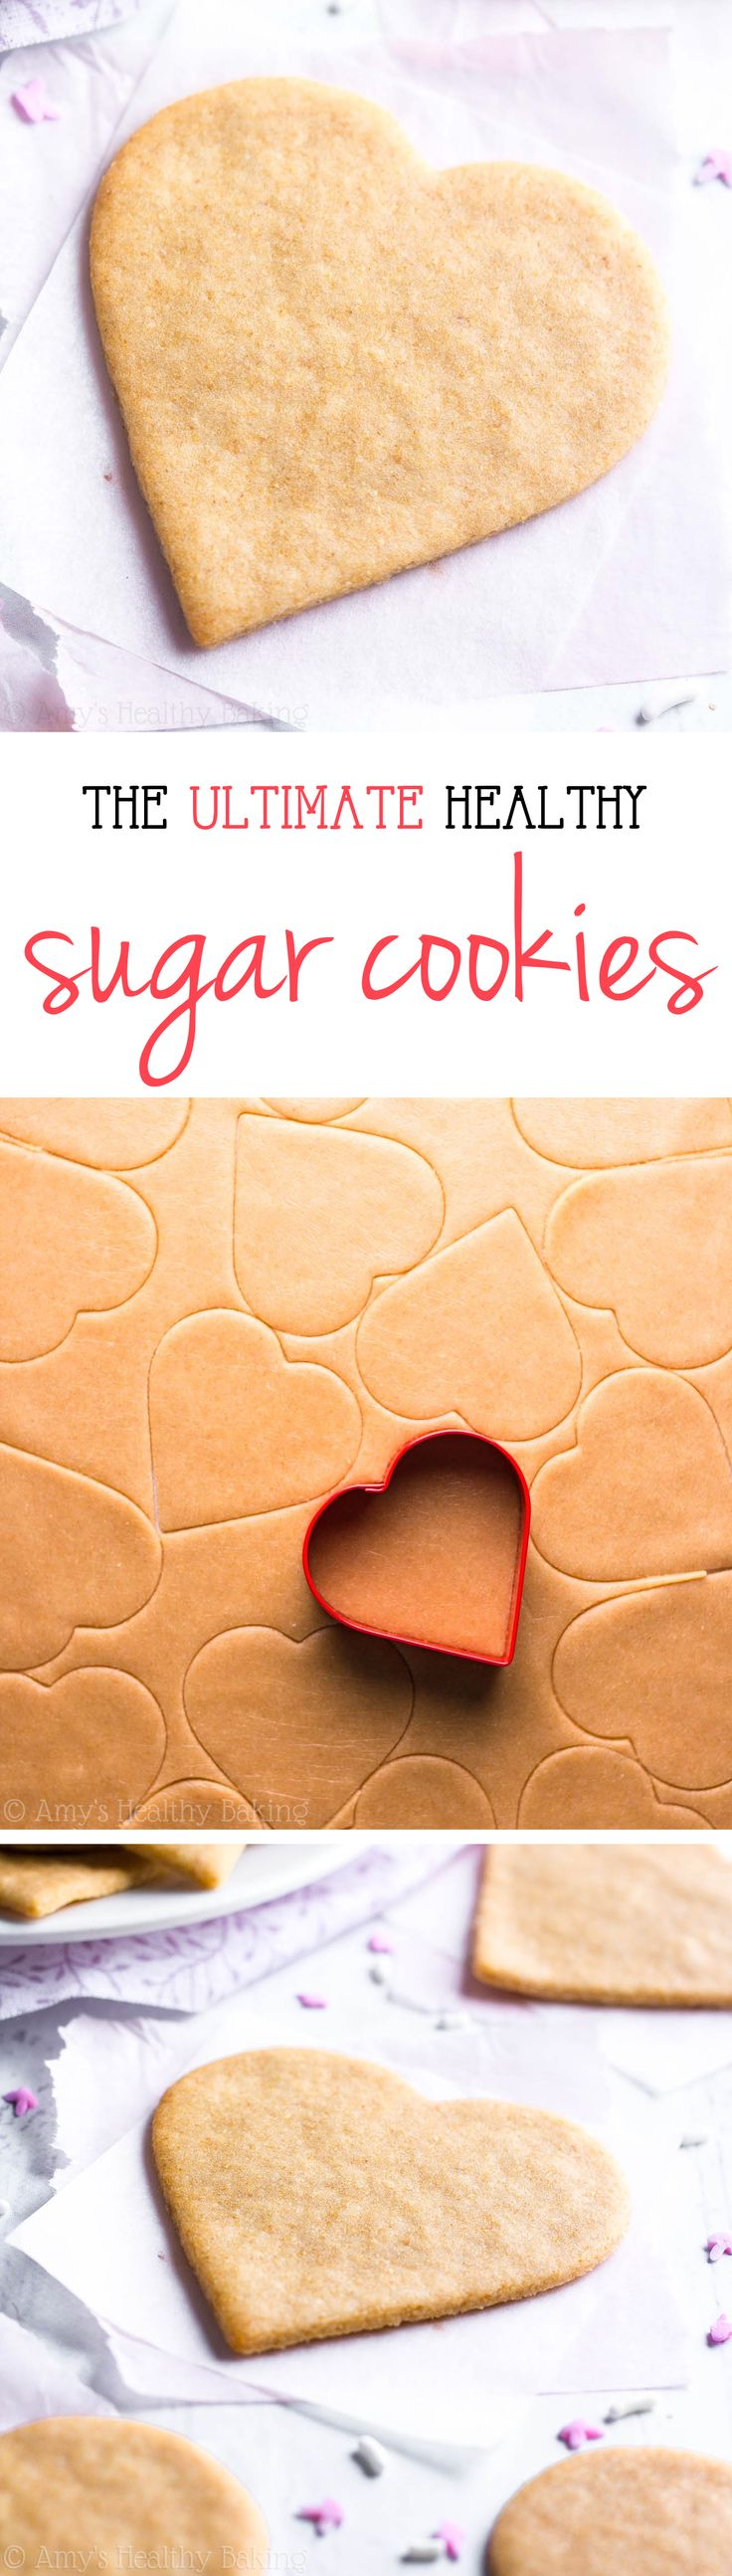 These skinny cookies don't taste healthy at all! They're the BEST -- soft, buttery & so easy! You'll never need another sugar cookie recipe again!